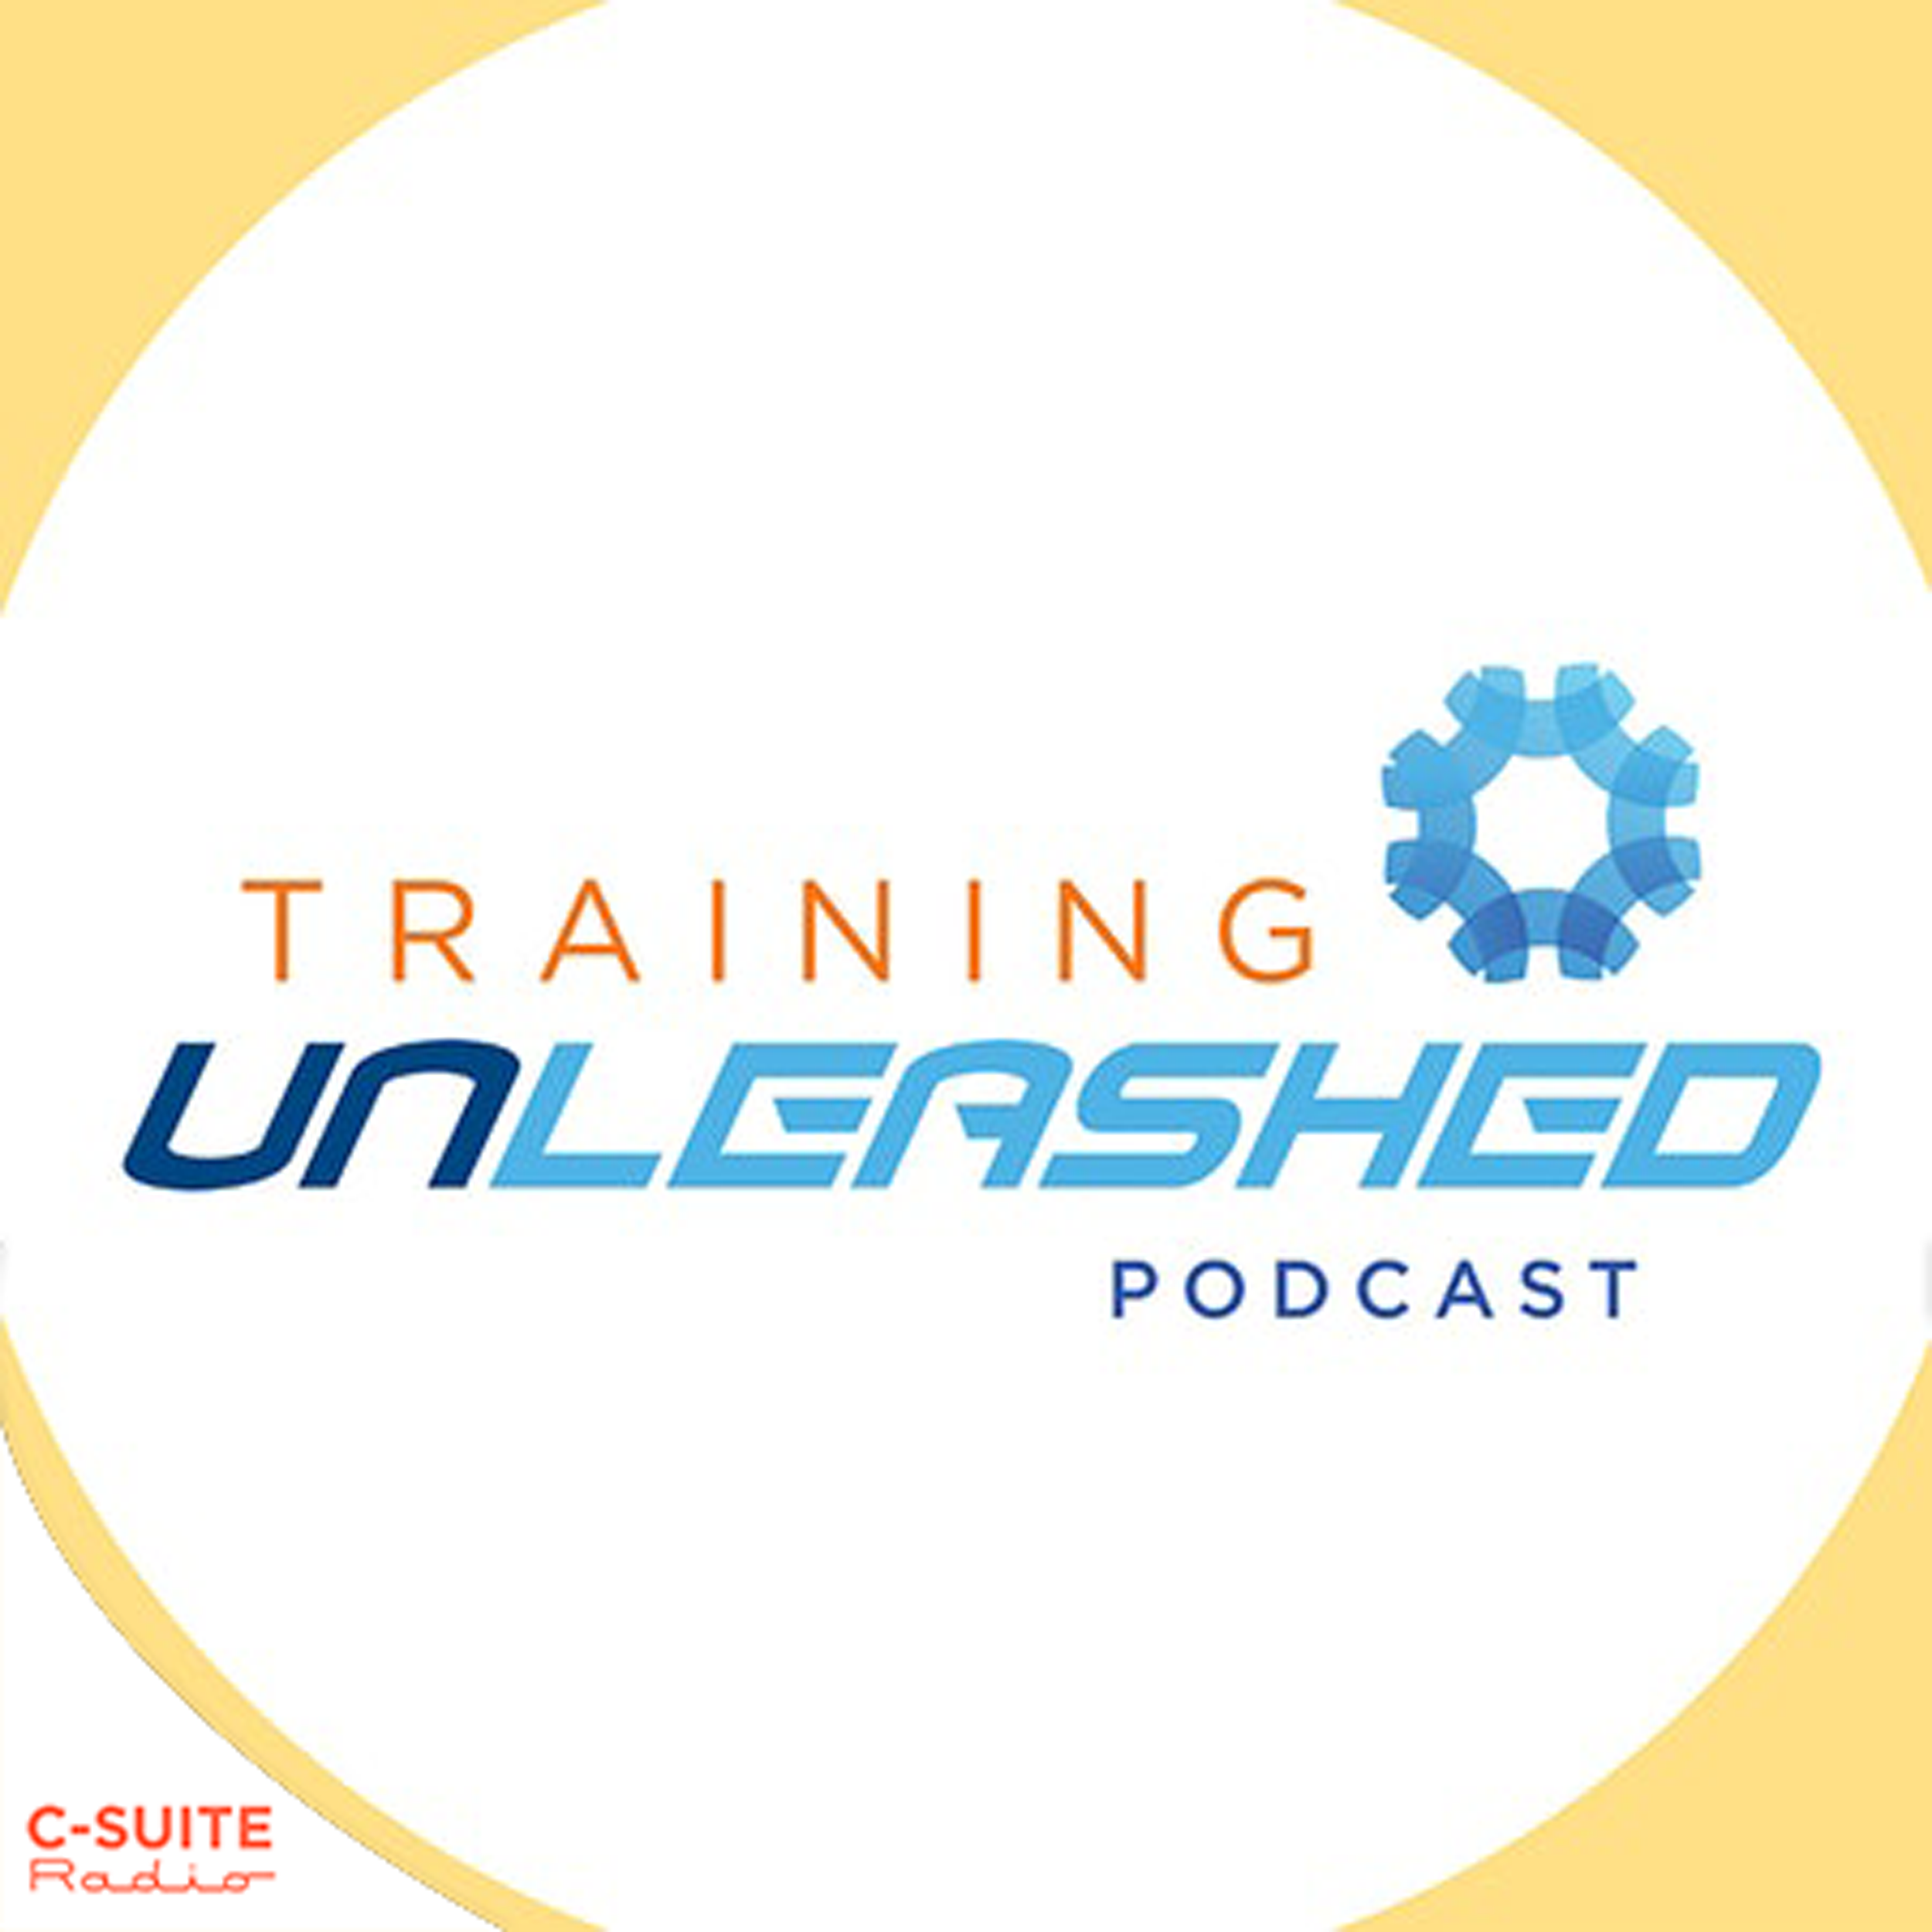 TRAINING UNLEASHED